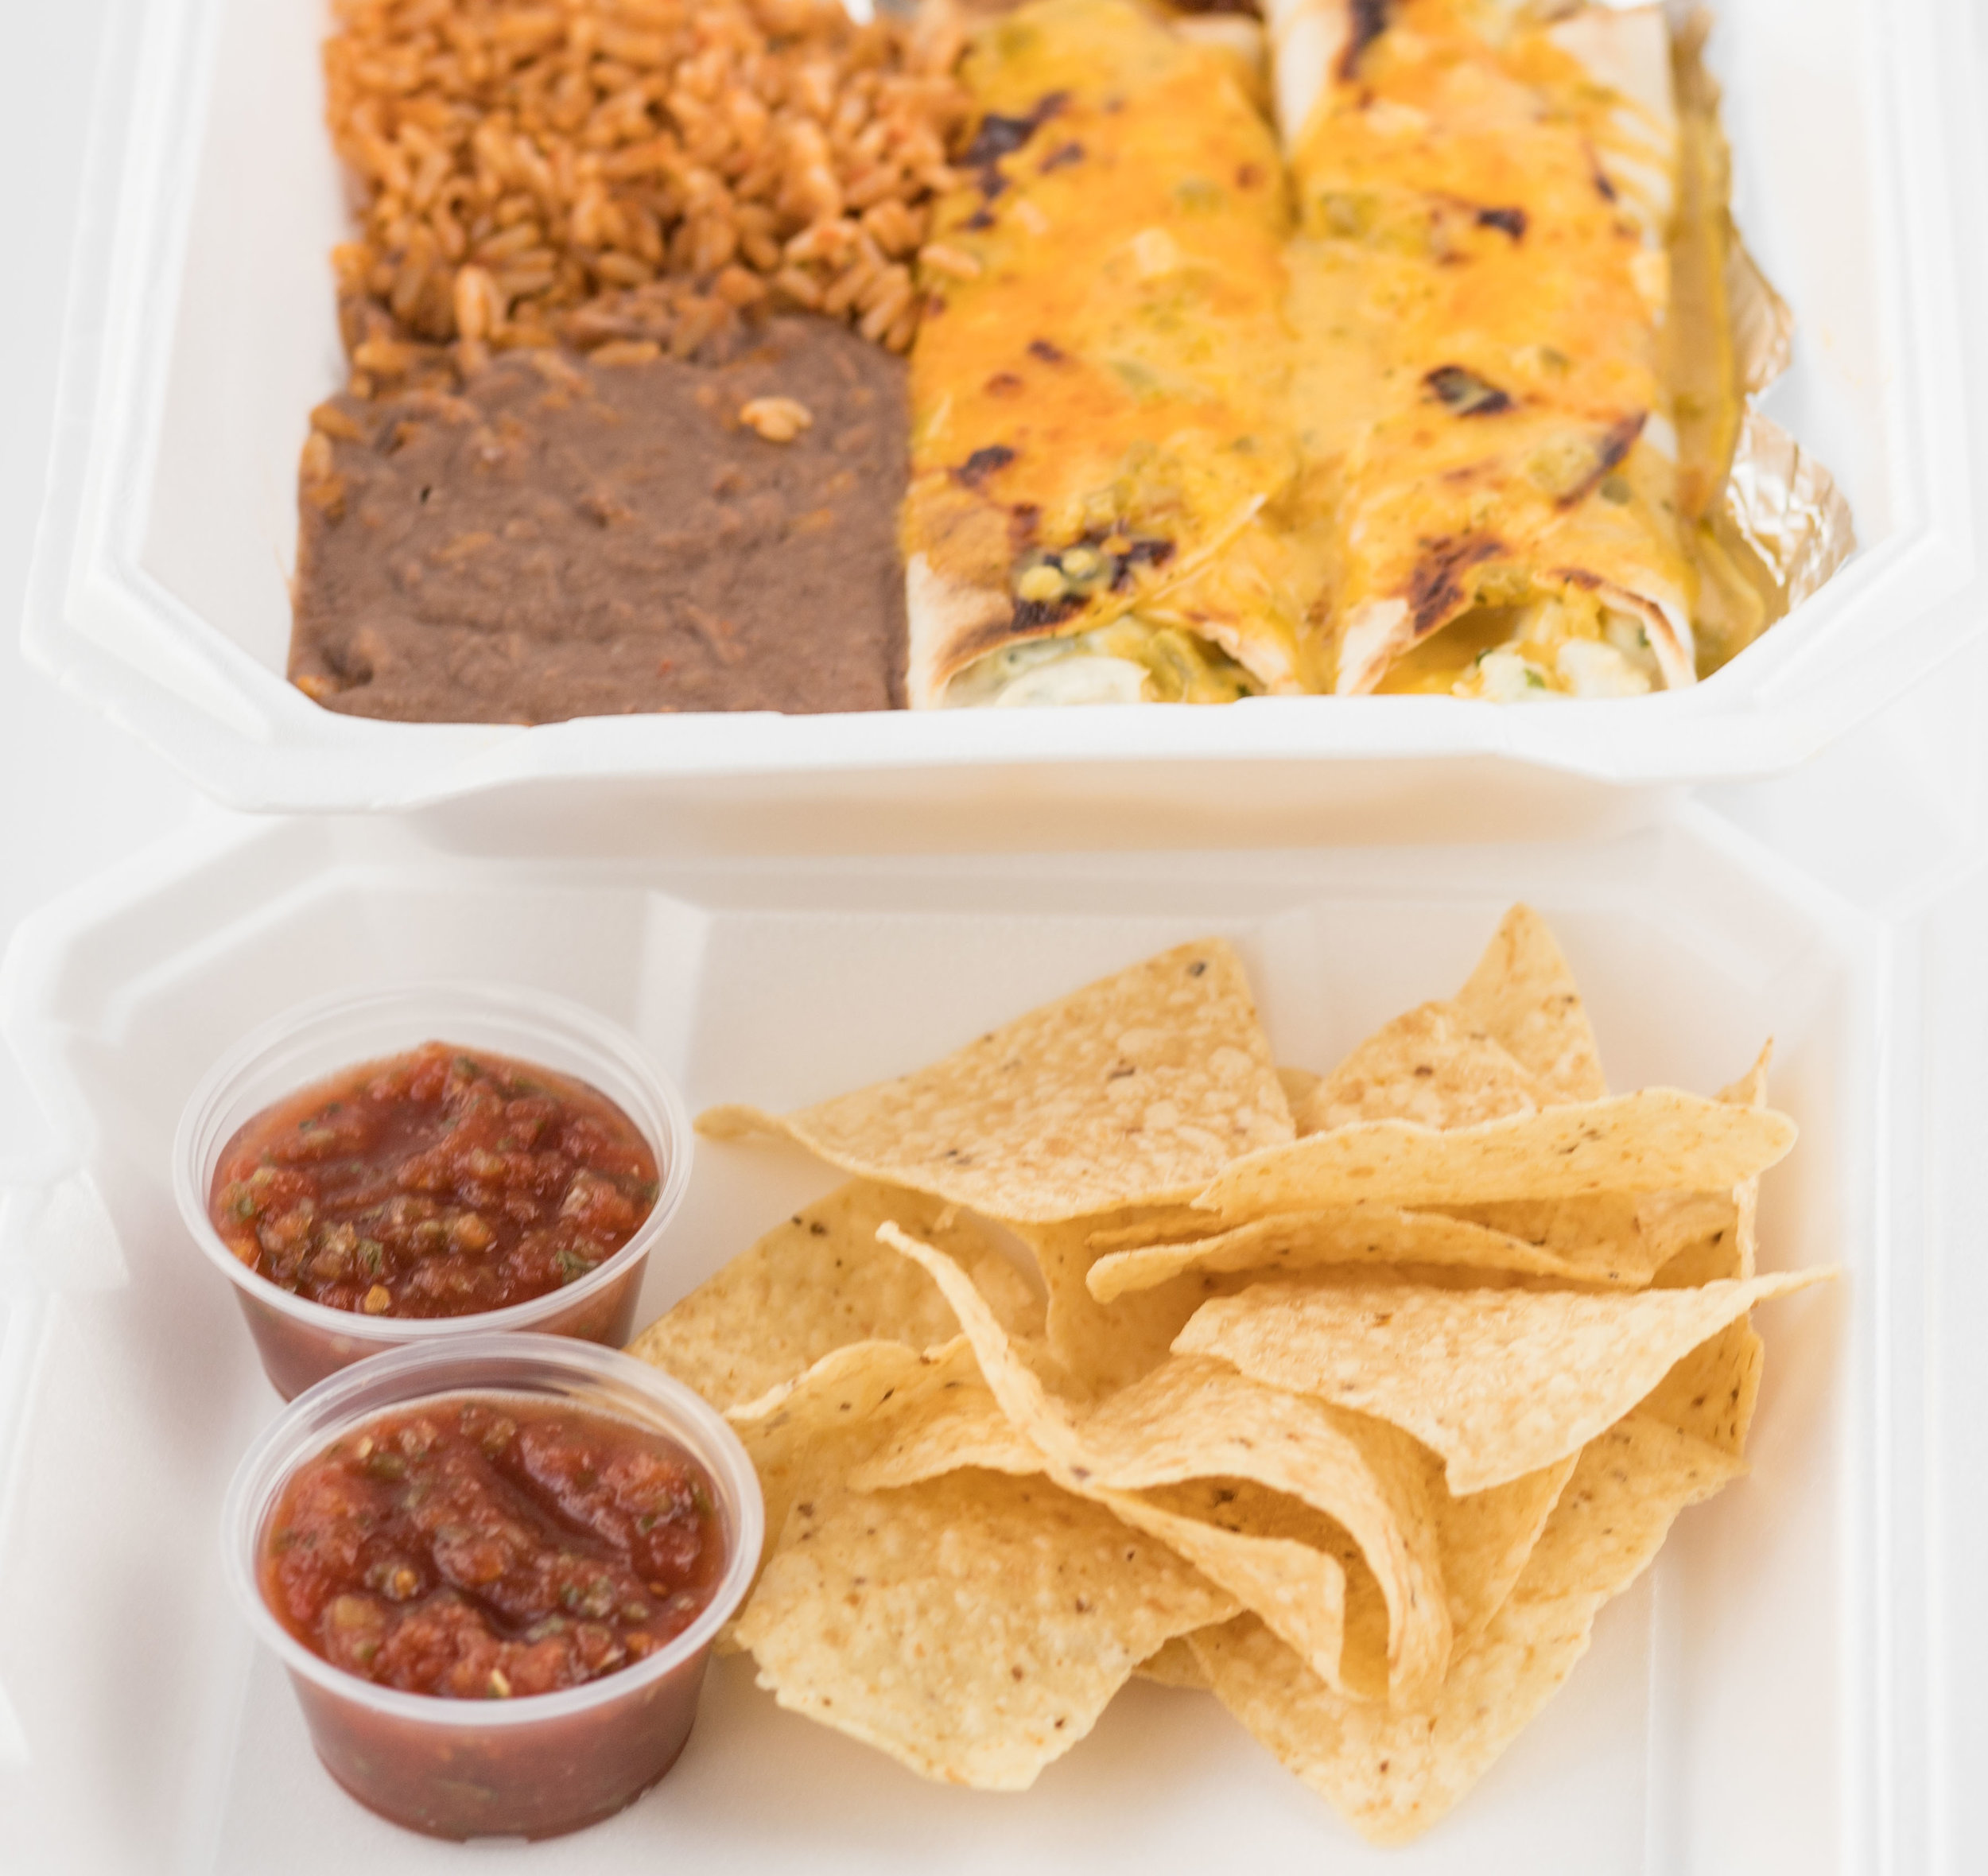 Chicken Enchilada Fundraiser Plate